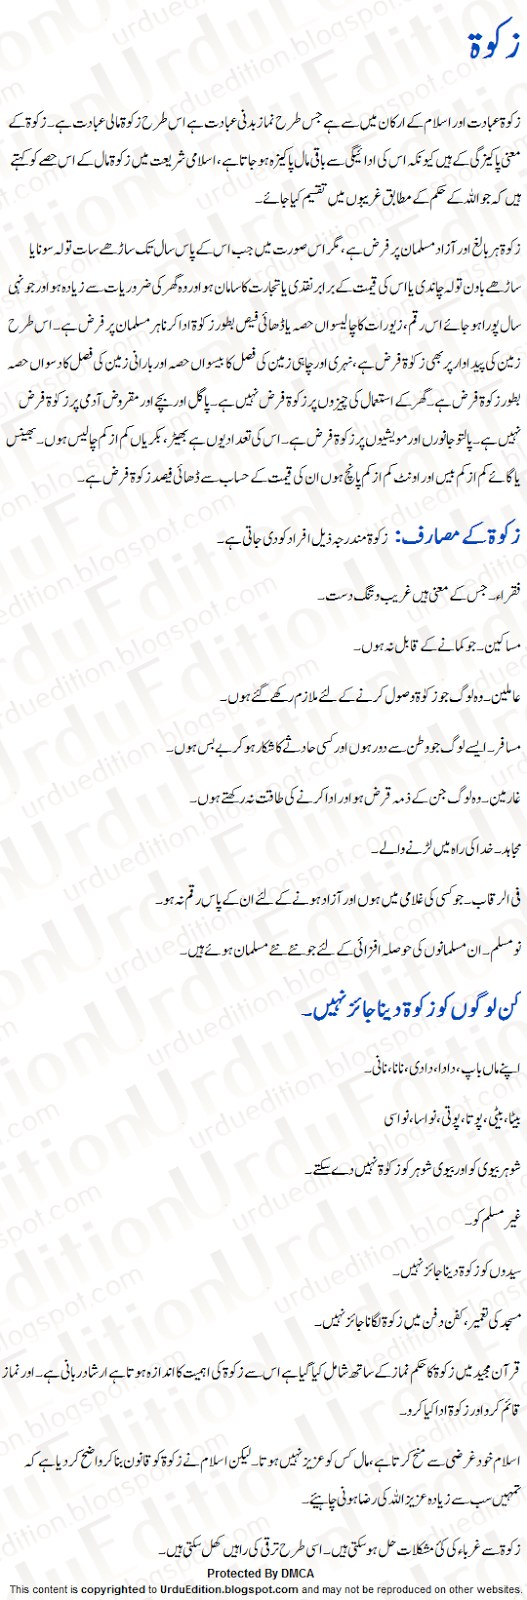 urdu essay in urdu language